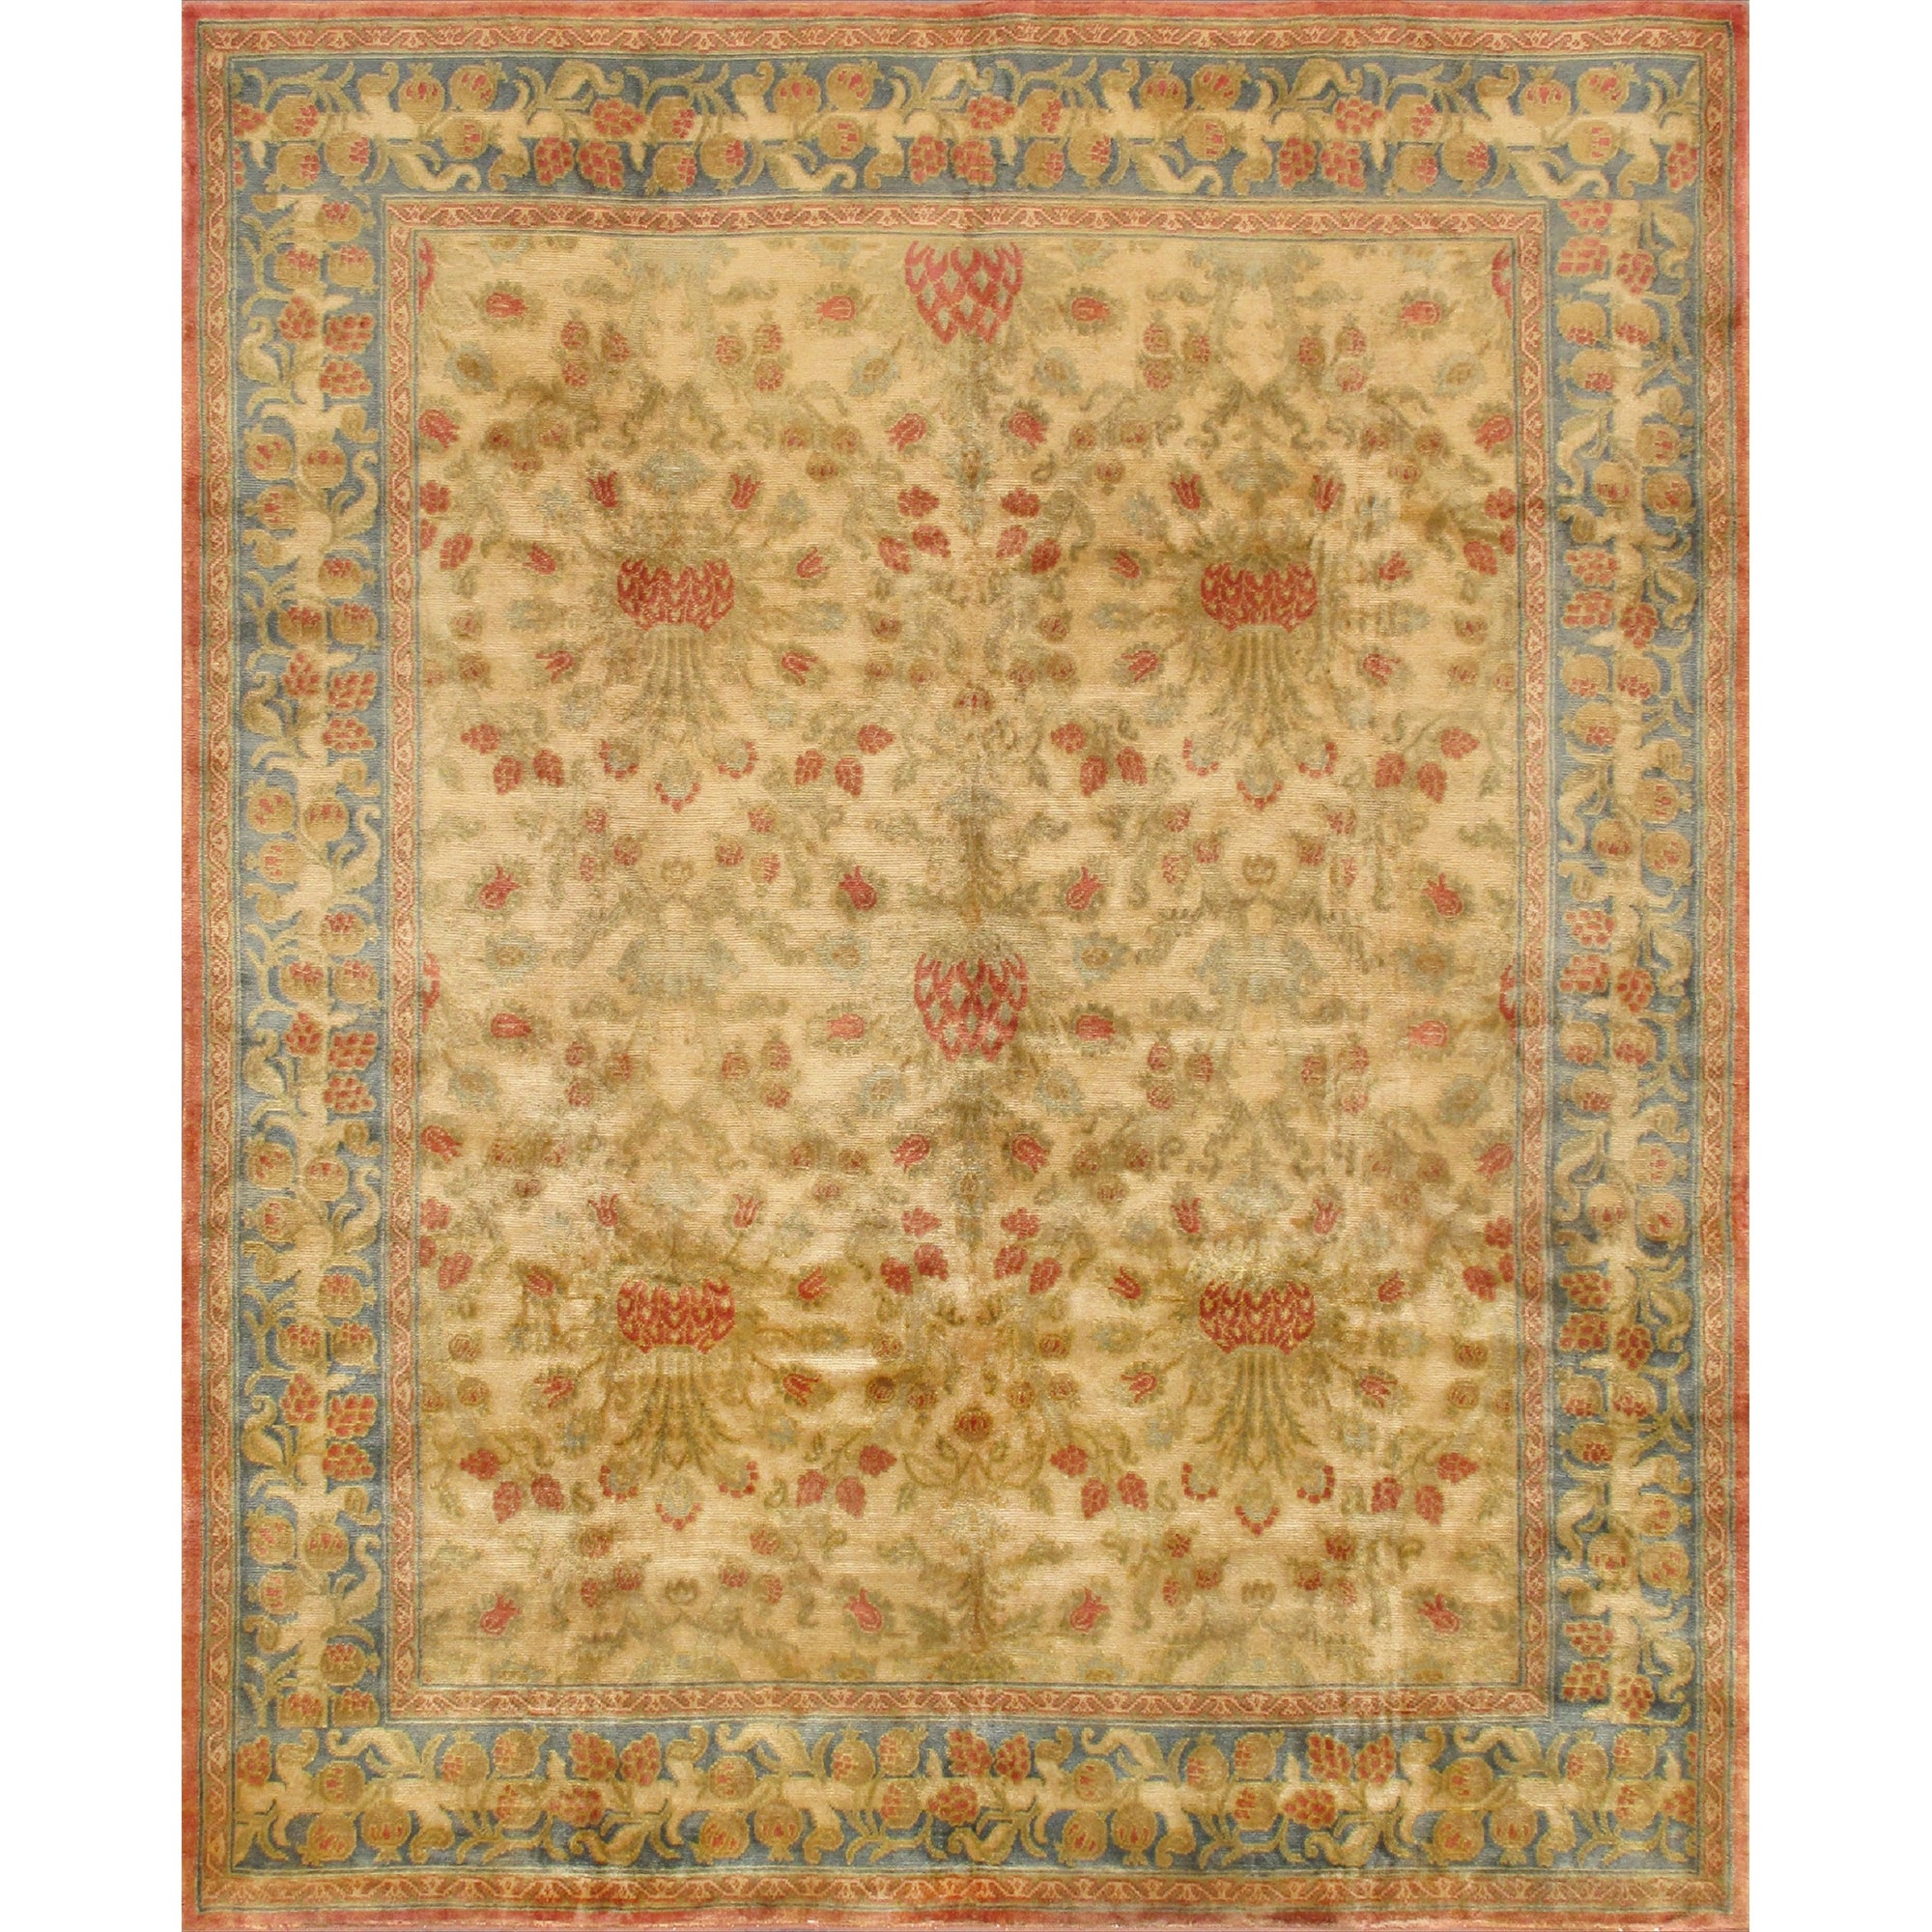 Pasargad Home Savonnerie Collection Hand Knotted Wool Area Rug 8 0 X 9 9 On Sale Overstock 31278824